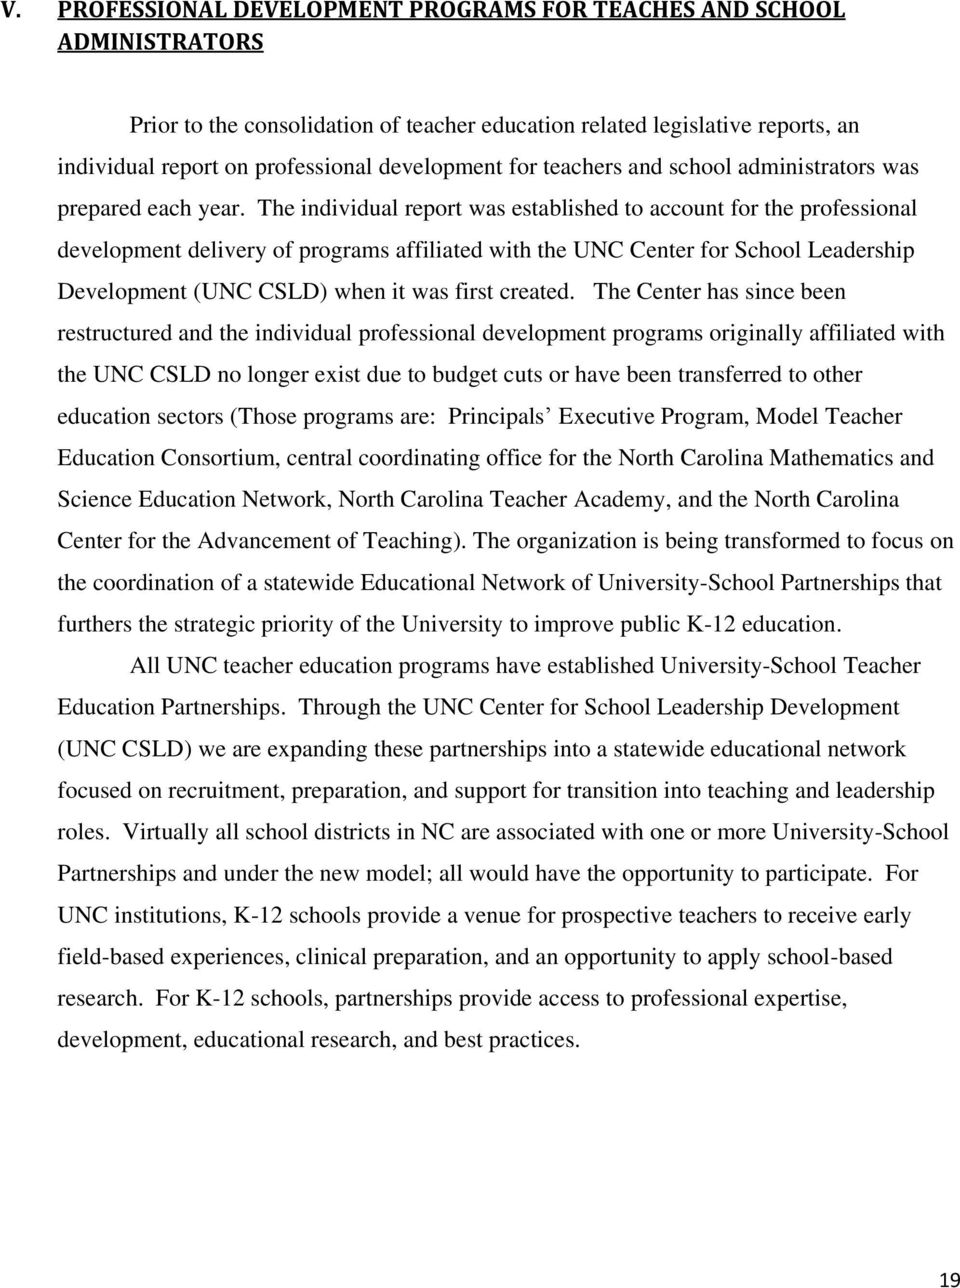 The individual report was established to account for the professional development delivery of programs affiliated with the UNC Center for School Leadership Development (UNC CSLD) when it was first